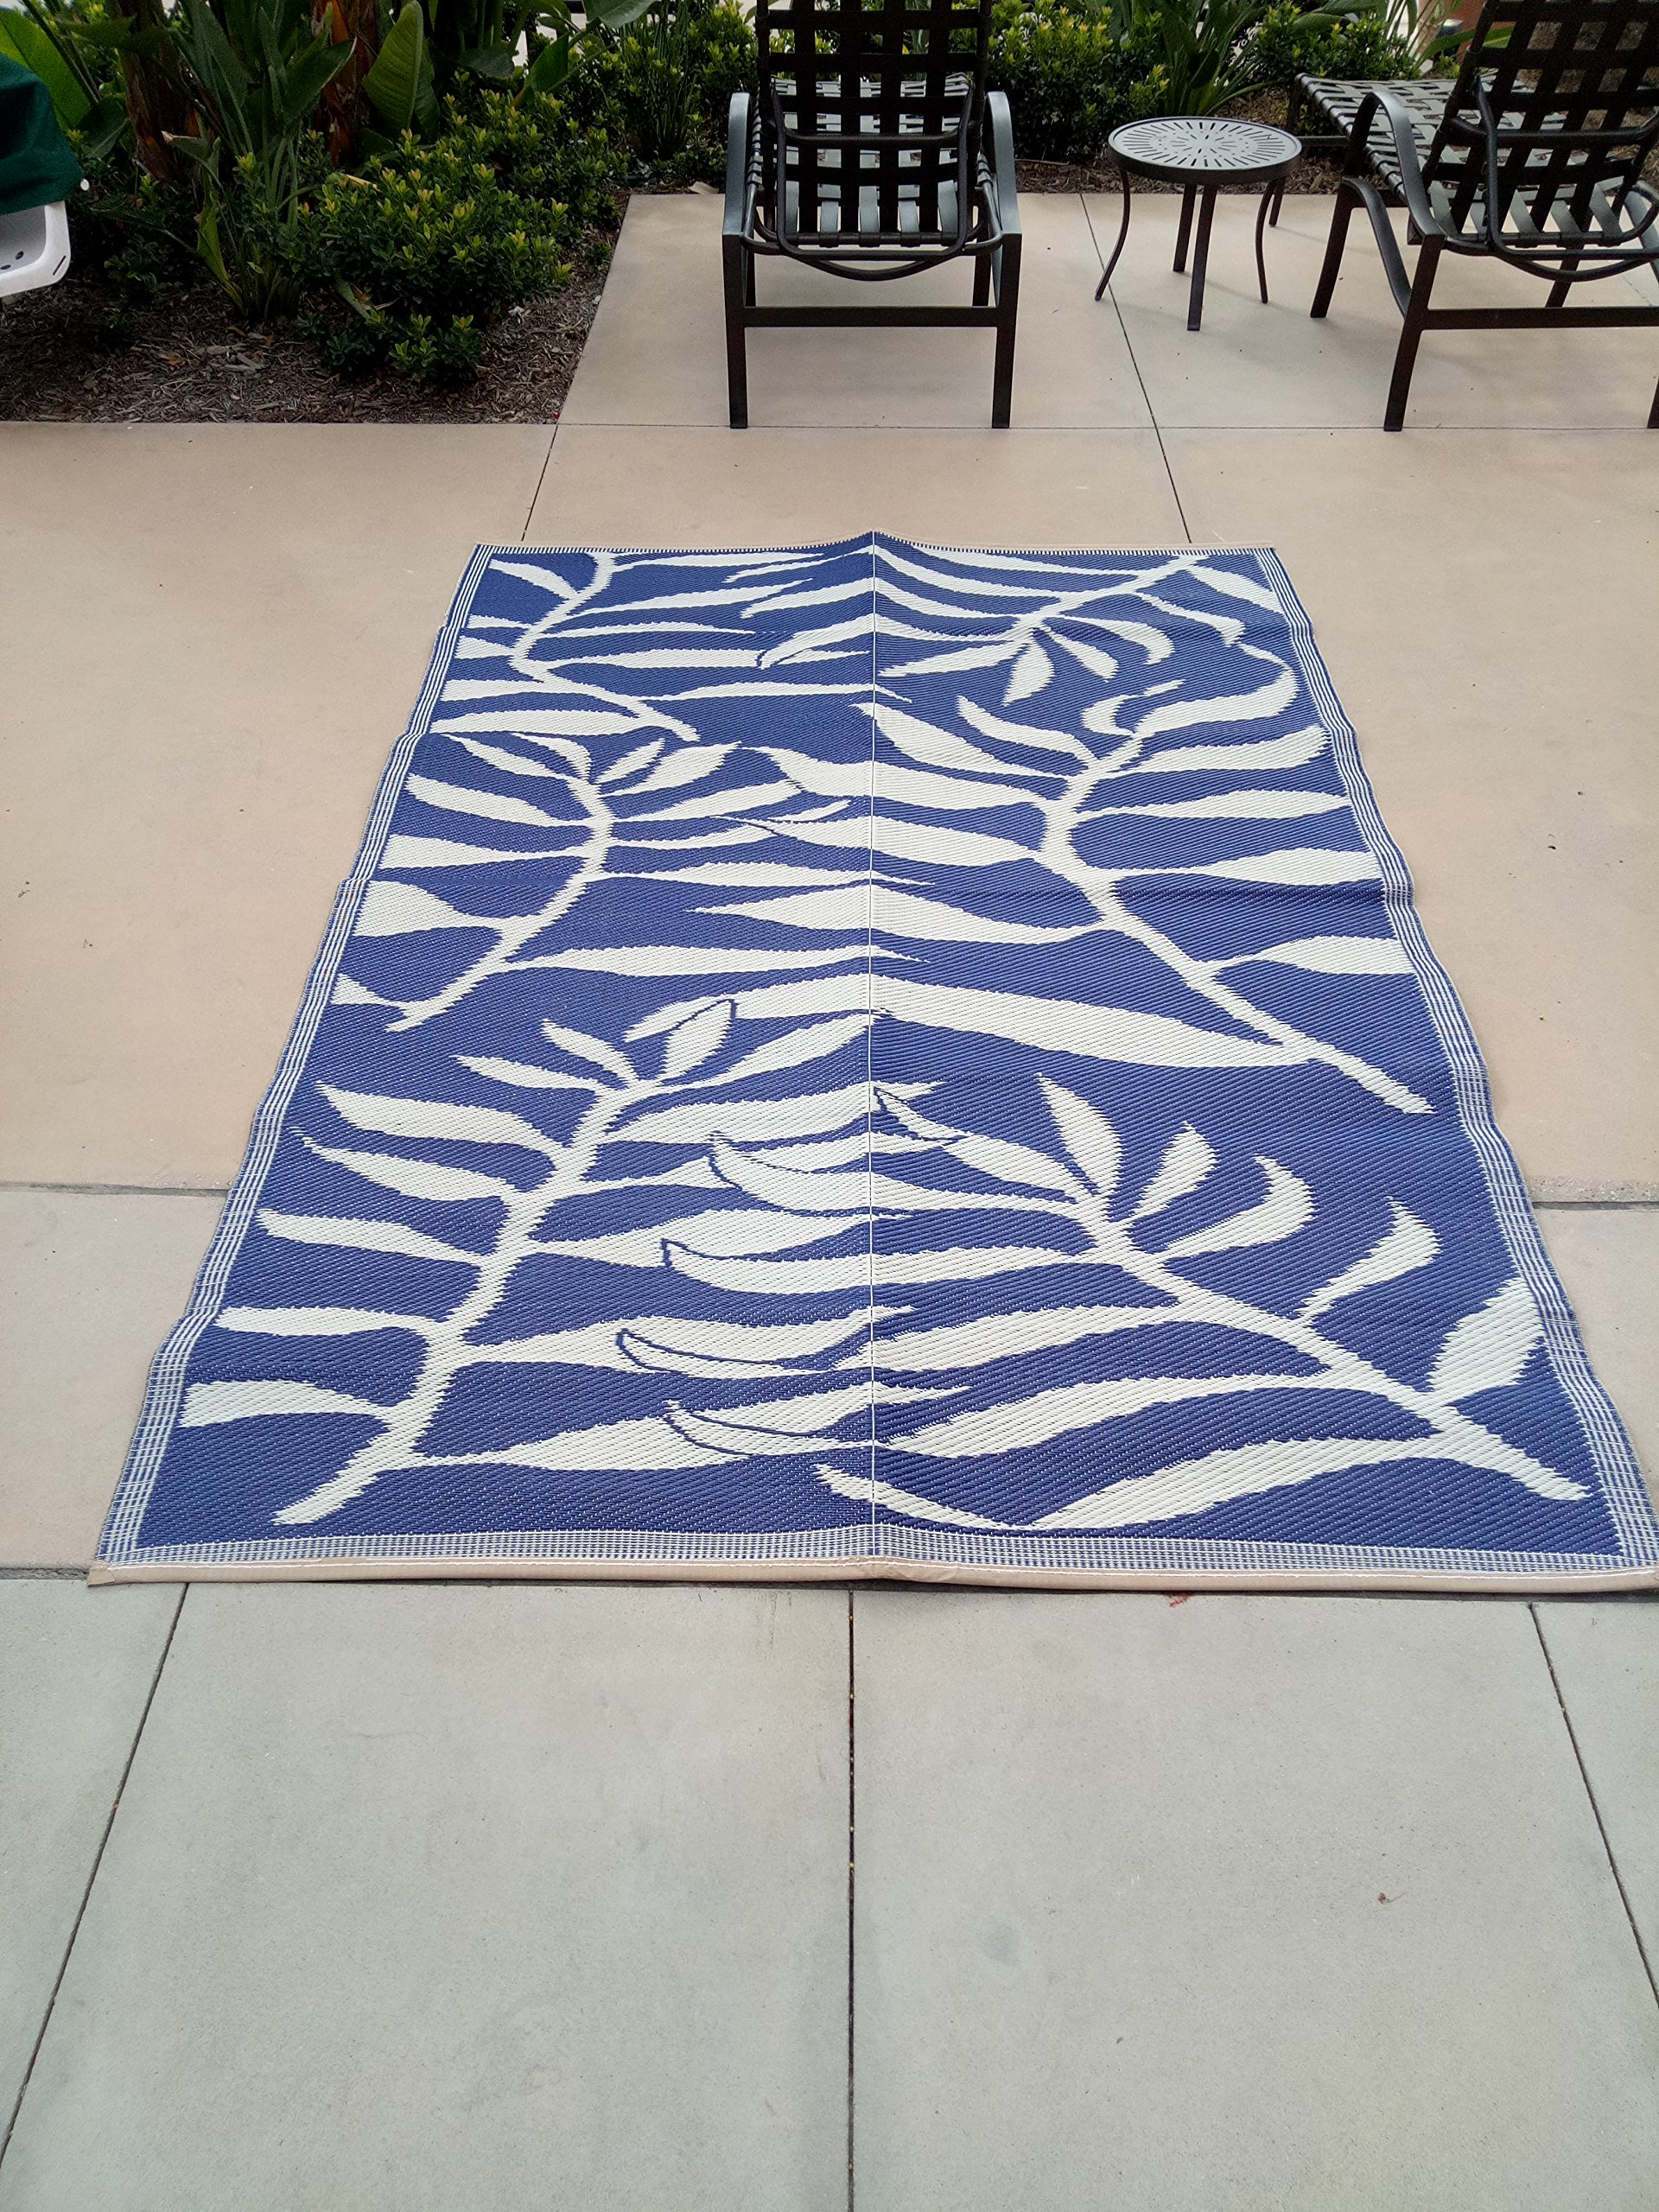 Lightweight Indoor Outdoor Reversible Plastic Area Rug - 5.9 x 8.9 Feet - Leaf Pattern - Blue/White